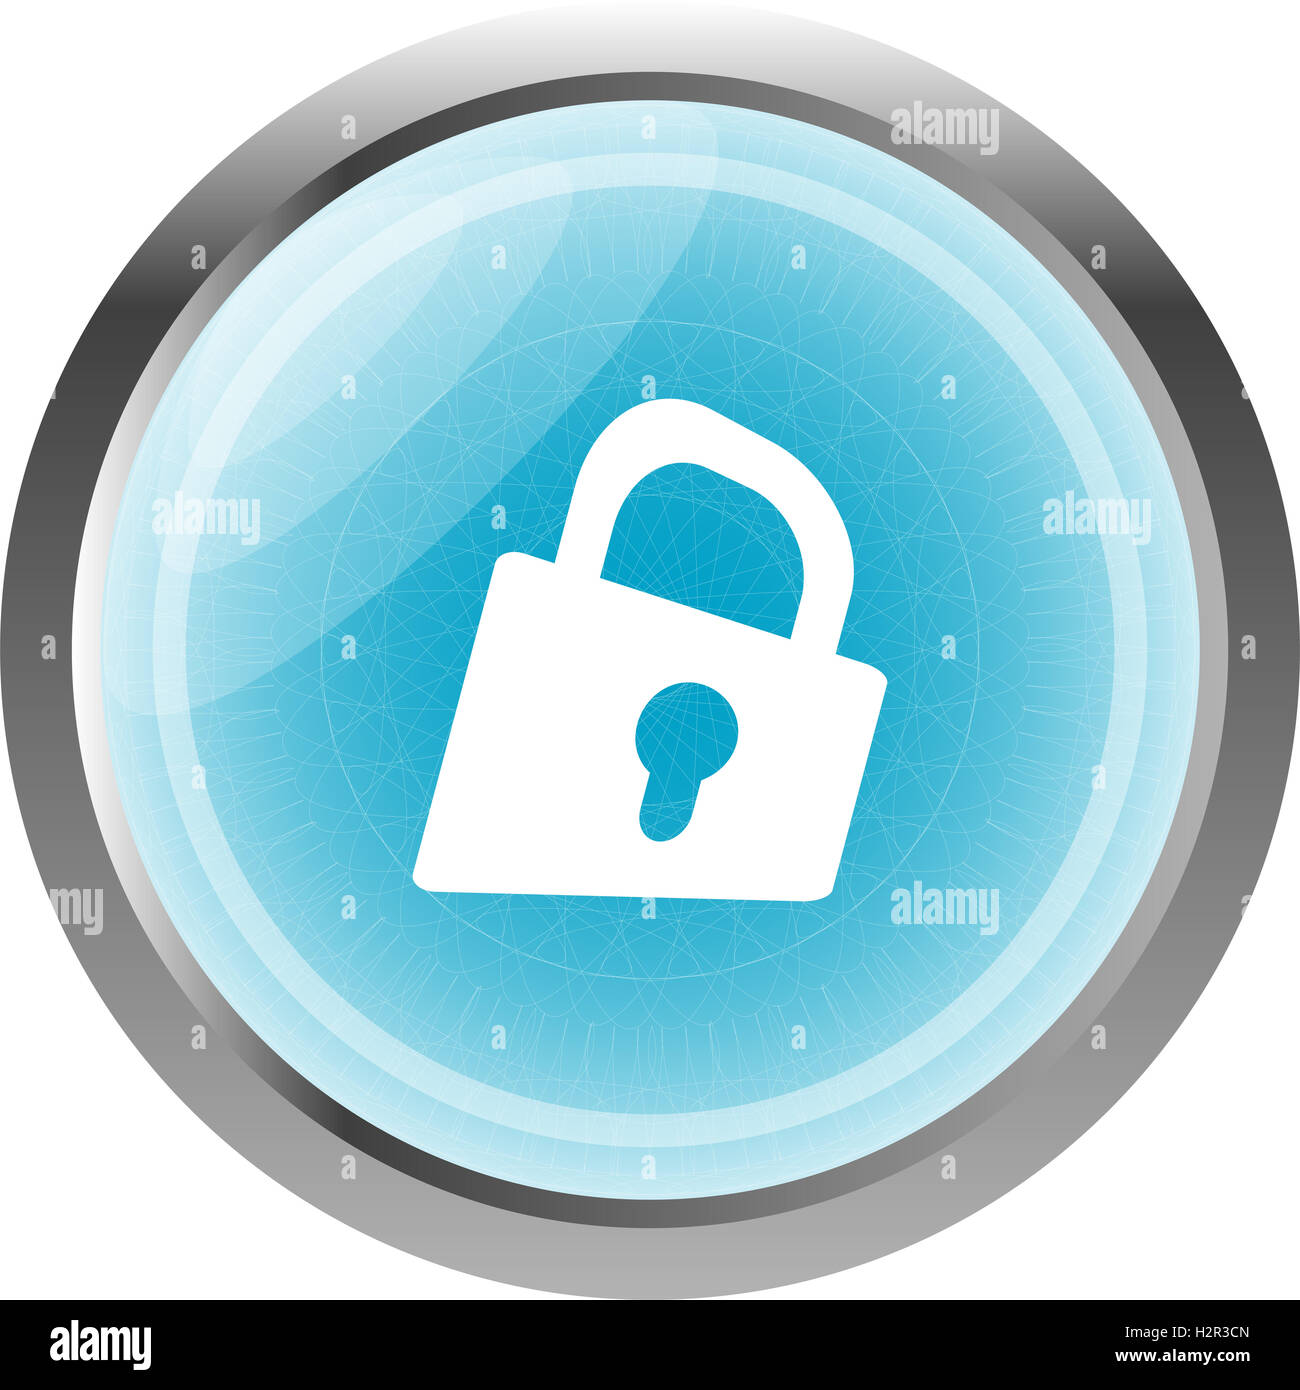 Padlock icon web sign. web app button isolated on white - Stock Image